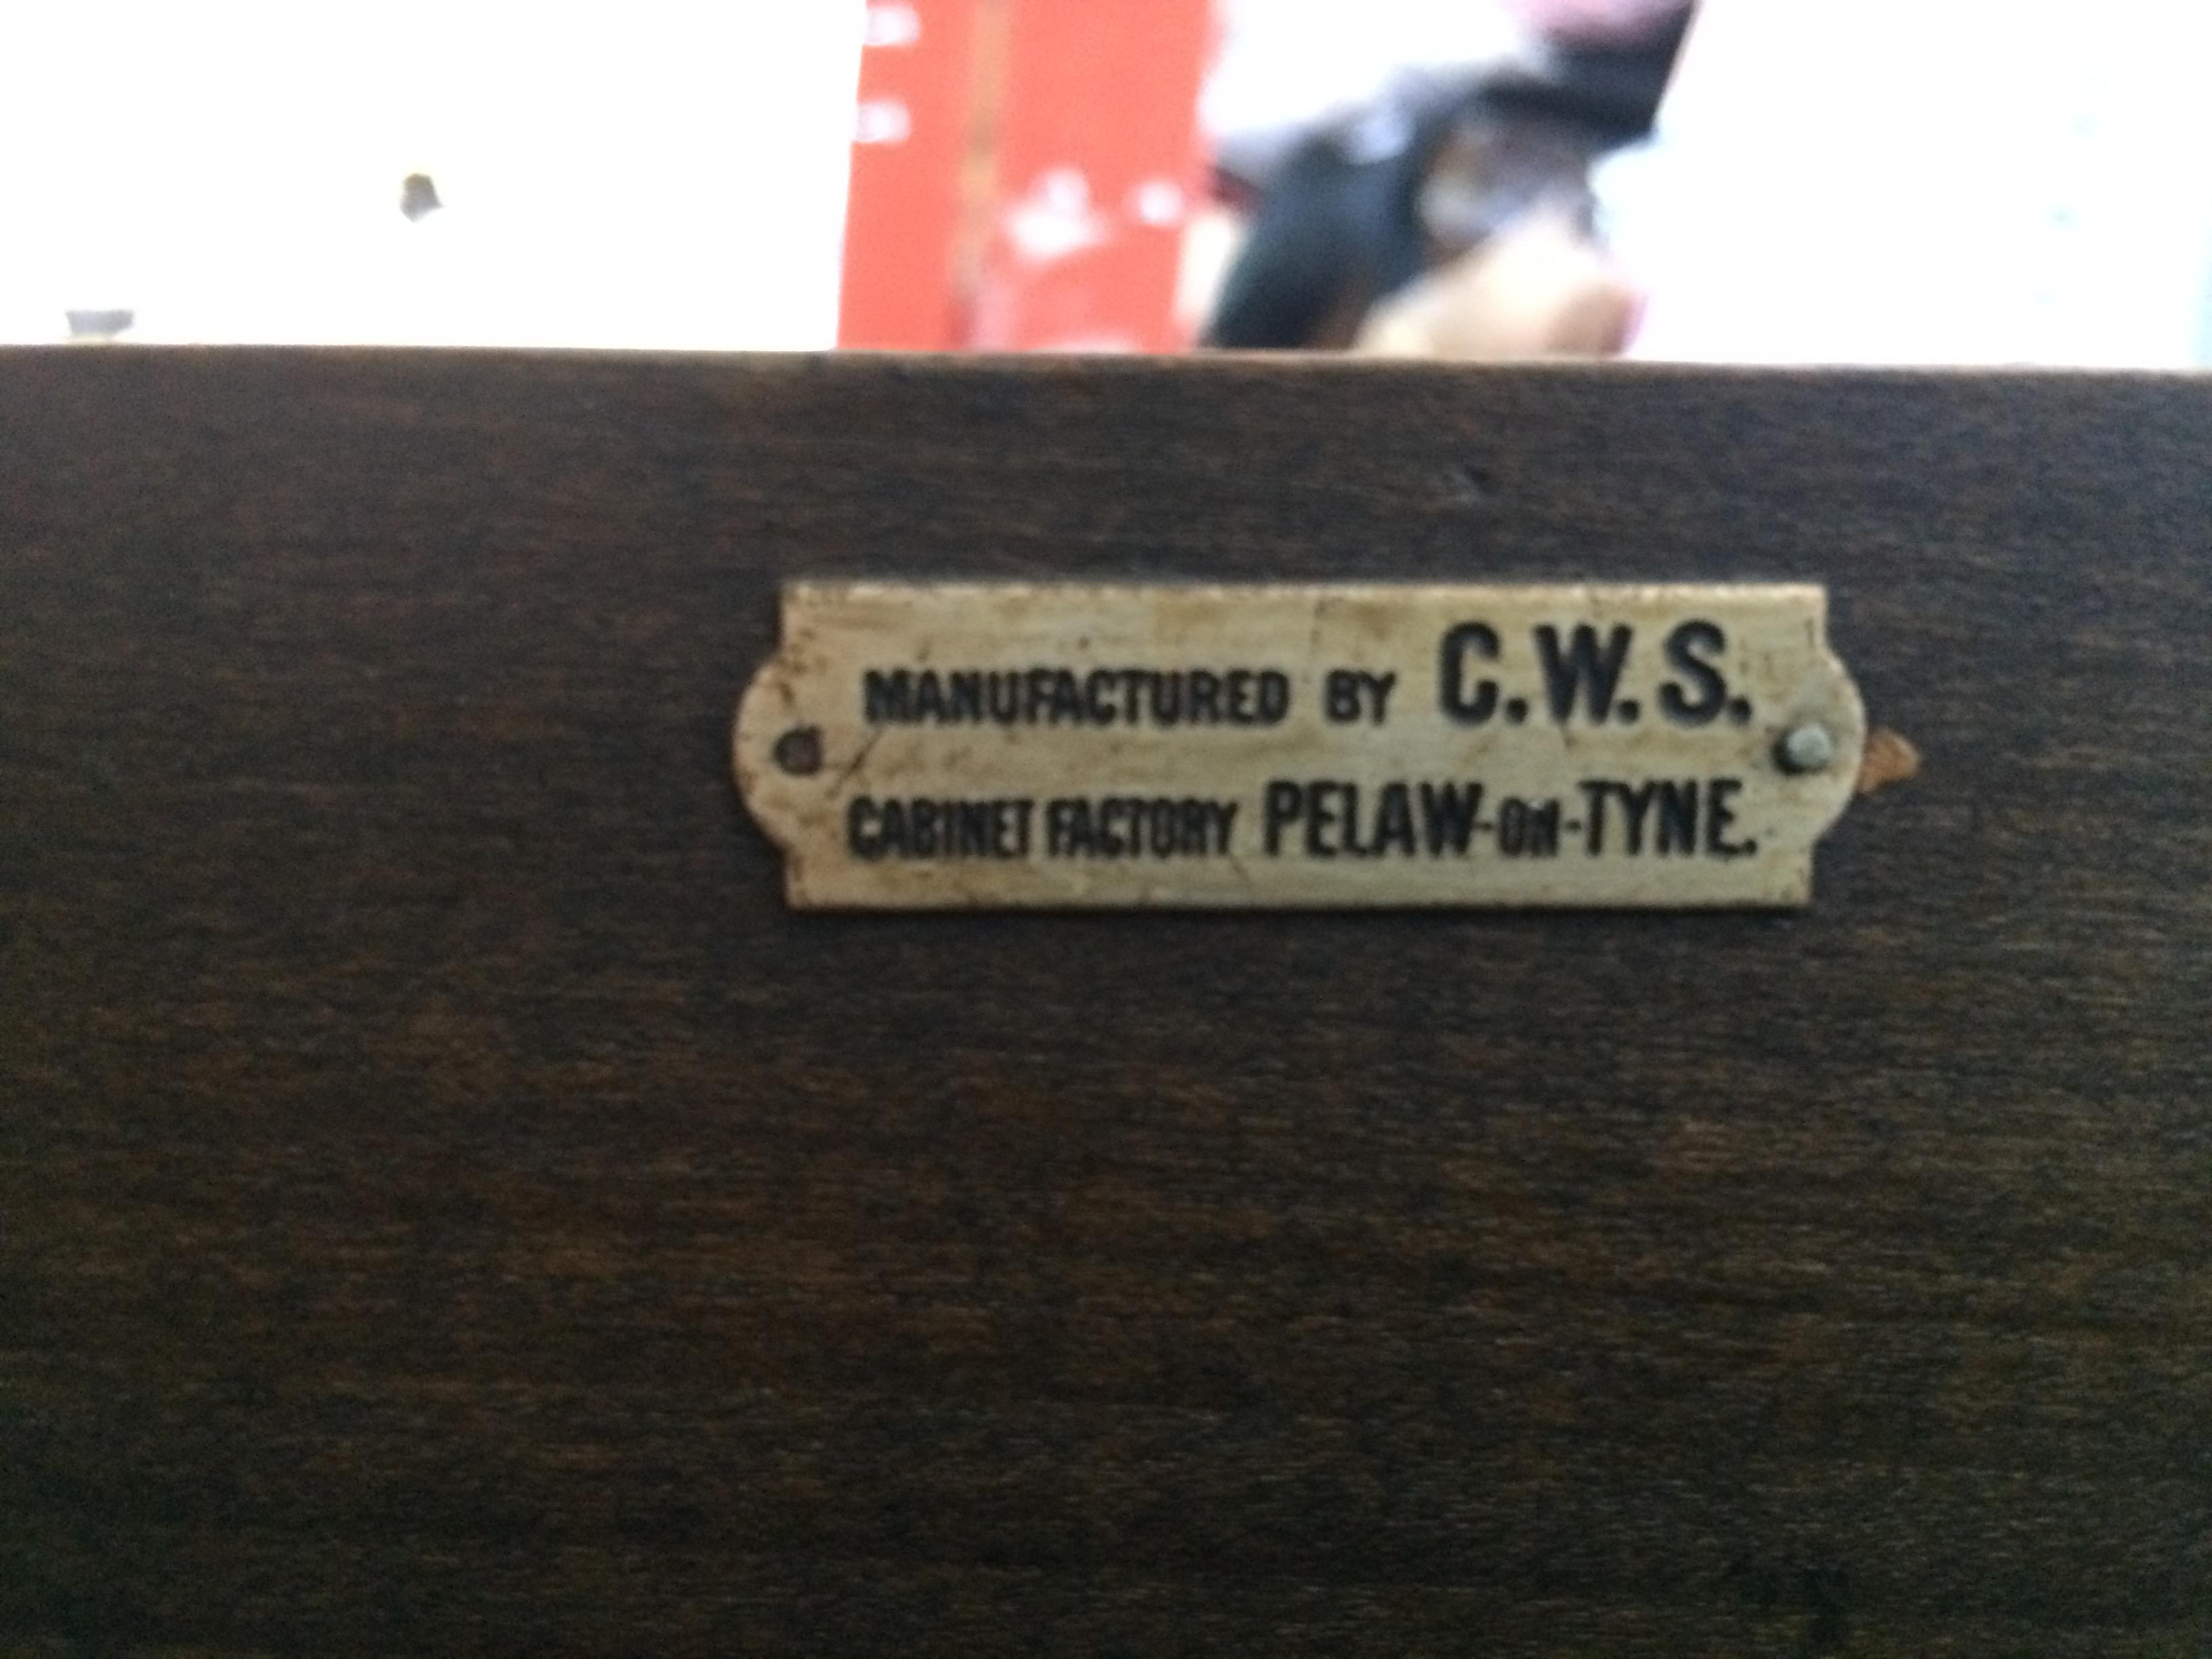 cws pelaw antique. CWS Cabinet Factory Pelaw-on-Tyne Cws Pelaw Antique N